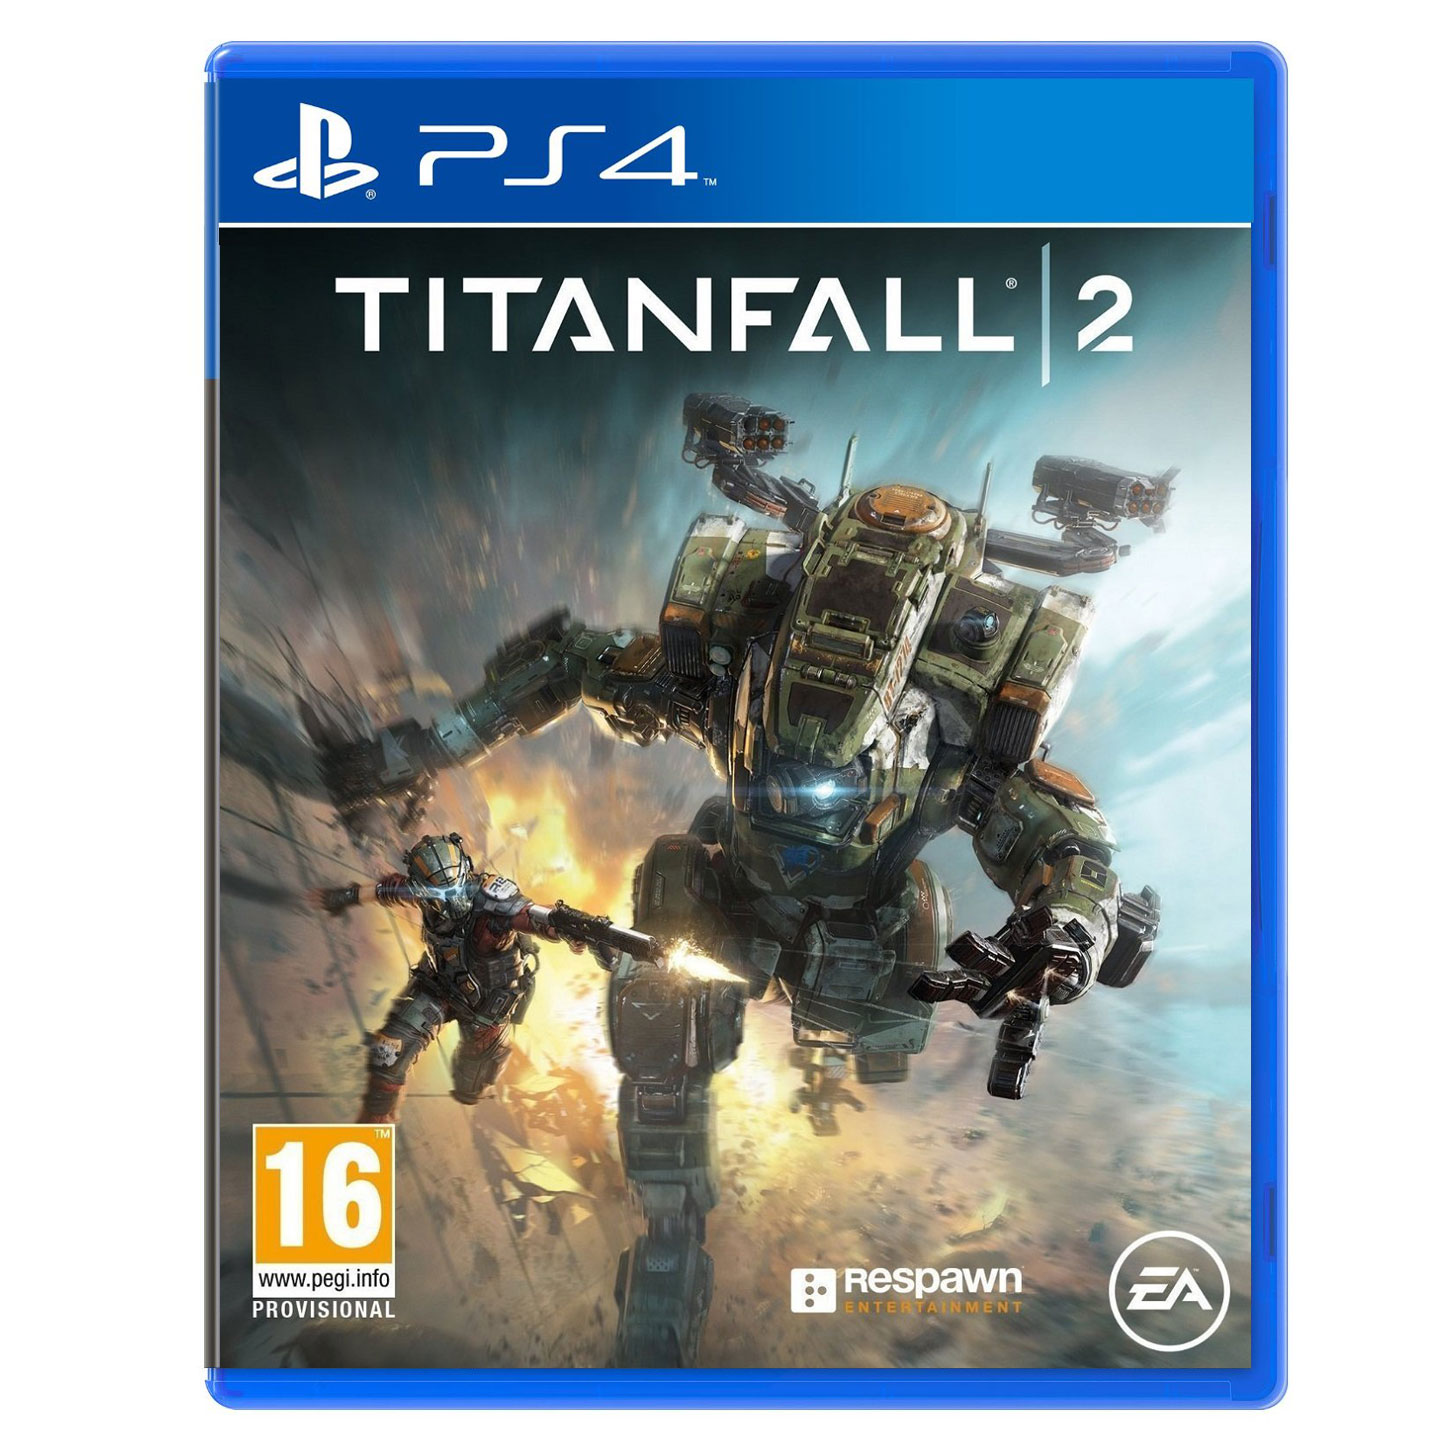 titanfall 2 ps4 jeux ps4 electronic arts sur ldlc. Black Bedroom Furniture Sets. Home Design Ideas